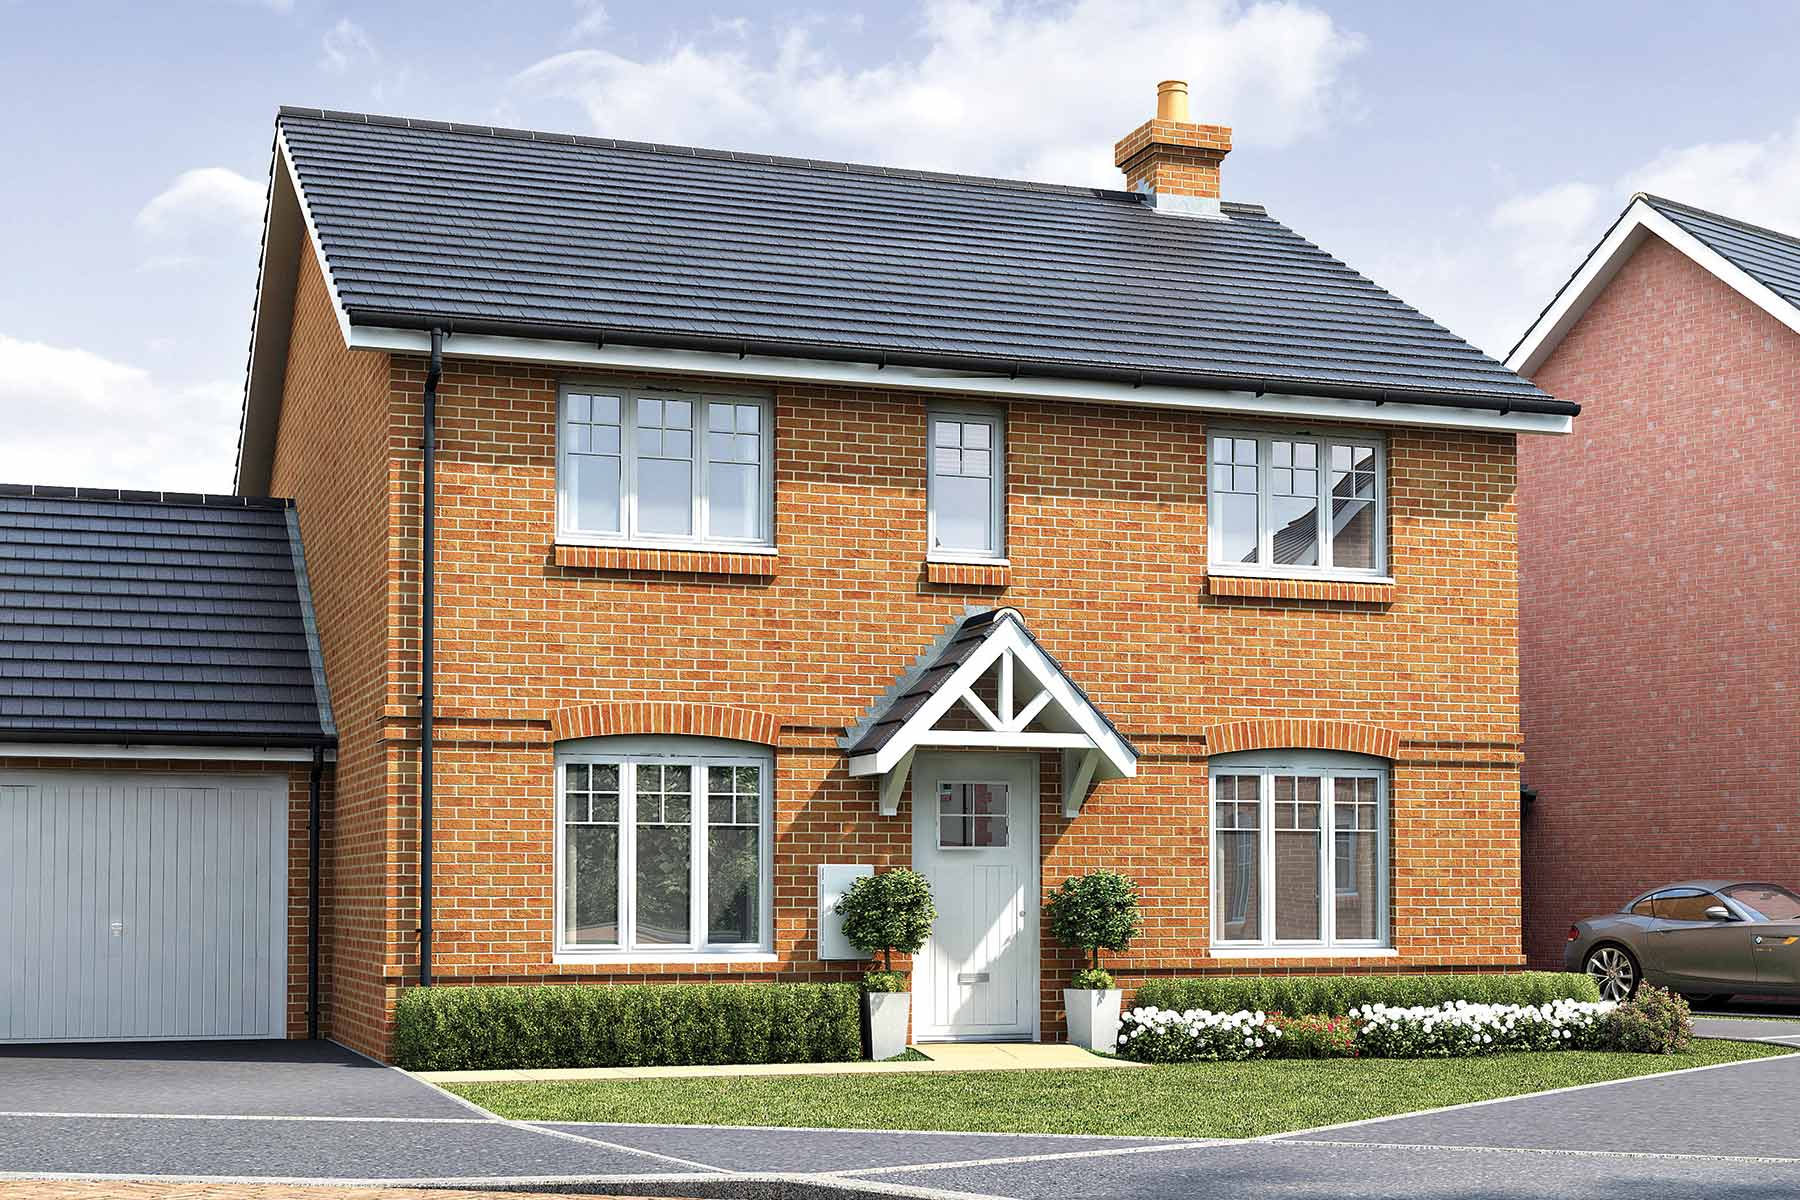 Artists impression of typical Thornford home